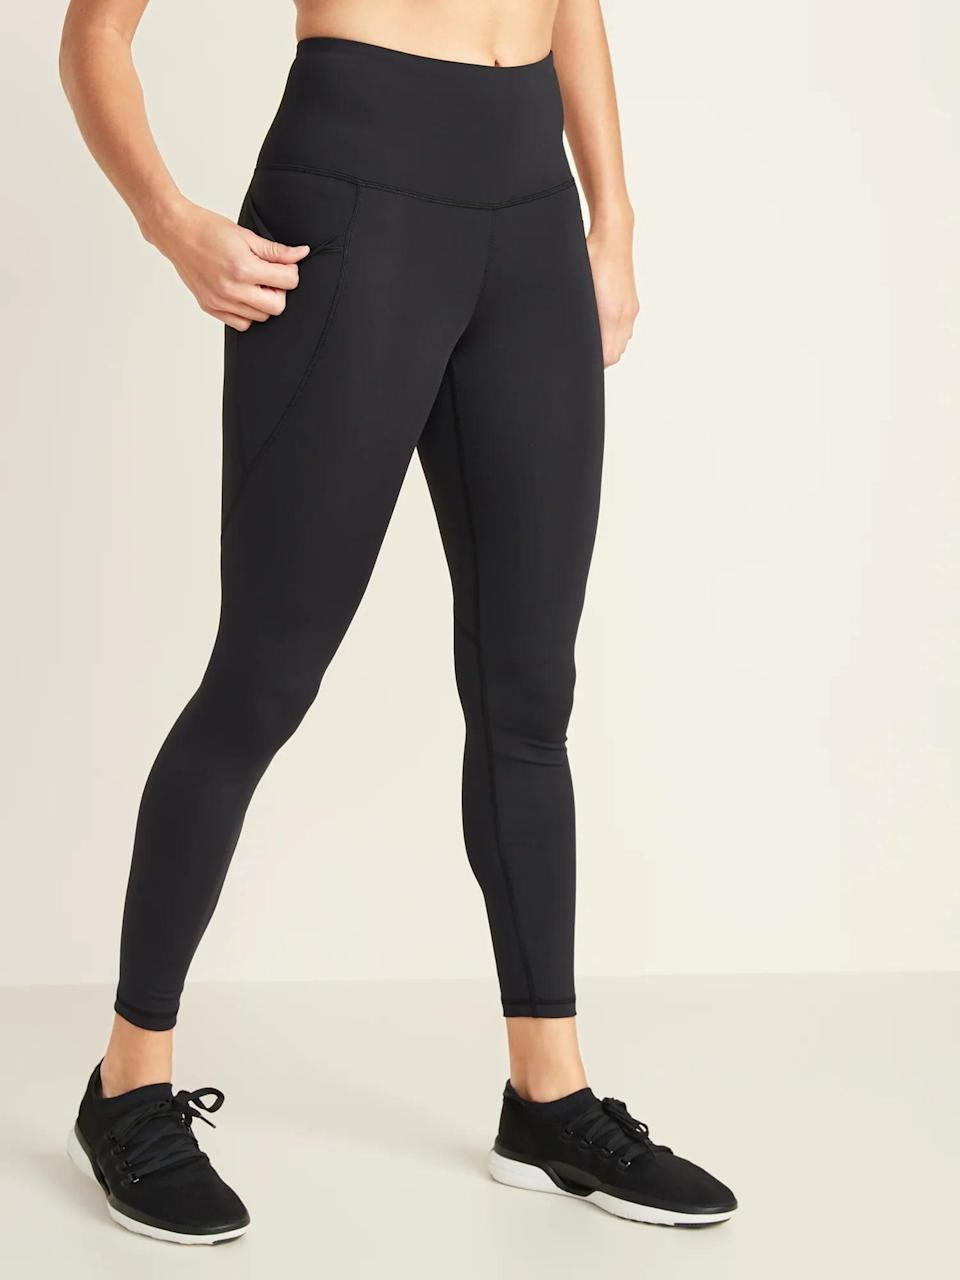 """<p>""""I knew after my first workout these <span>High-Waisted Elevate Powersoft 7/8-Length Side-Pocket Leggings</span> ($30, originally $40) would be a pant I'd be buying time and time again. They're incredibly easy to slide on and don't require additional tugging at the thigh or waistband in order to get them on the way other tights I own do. And my absolute favorite aspect of these tights is, of course, the deep pockets. My iPhone, keys, and small zip wallet all fit inside the pockets and don't budge while running, which is no easy feat. I've done burpees and jumping jacks and gone on at least a dozen runs in them, and nothing has ever fallen out."""" - Rebecca Brown, contributor</p> <p>Read the full <a href=""""https://www.popsugar.com/fitness/best-workout-leggings-with-pockets-at-old-navy-review-47474723"""" class=""""link rapid-noclick-resp"""" rel=""""nofollow noopener"""" target=""""_blank"""" data-ylk=""""slk:Old Navy High-Waisted Elevate Powersoft 7/8-Length Side-Pocket Leggings review"""">Old Navy High-Waisted Elevate Powersoft 7/8-Length Side-Pocket Leggings review</a>.</p>"""